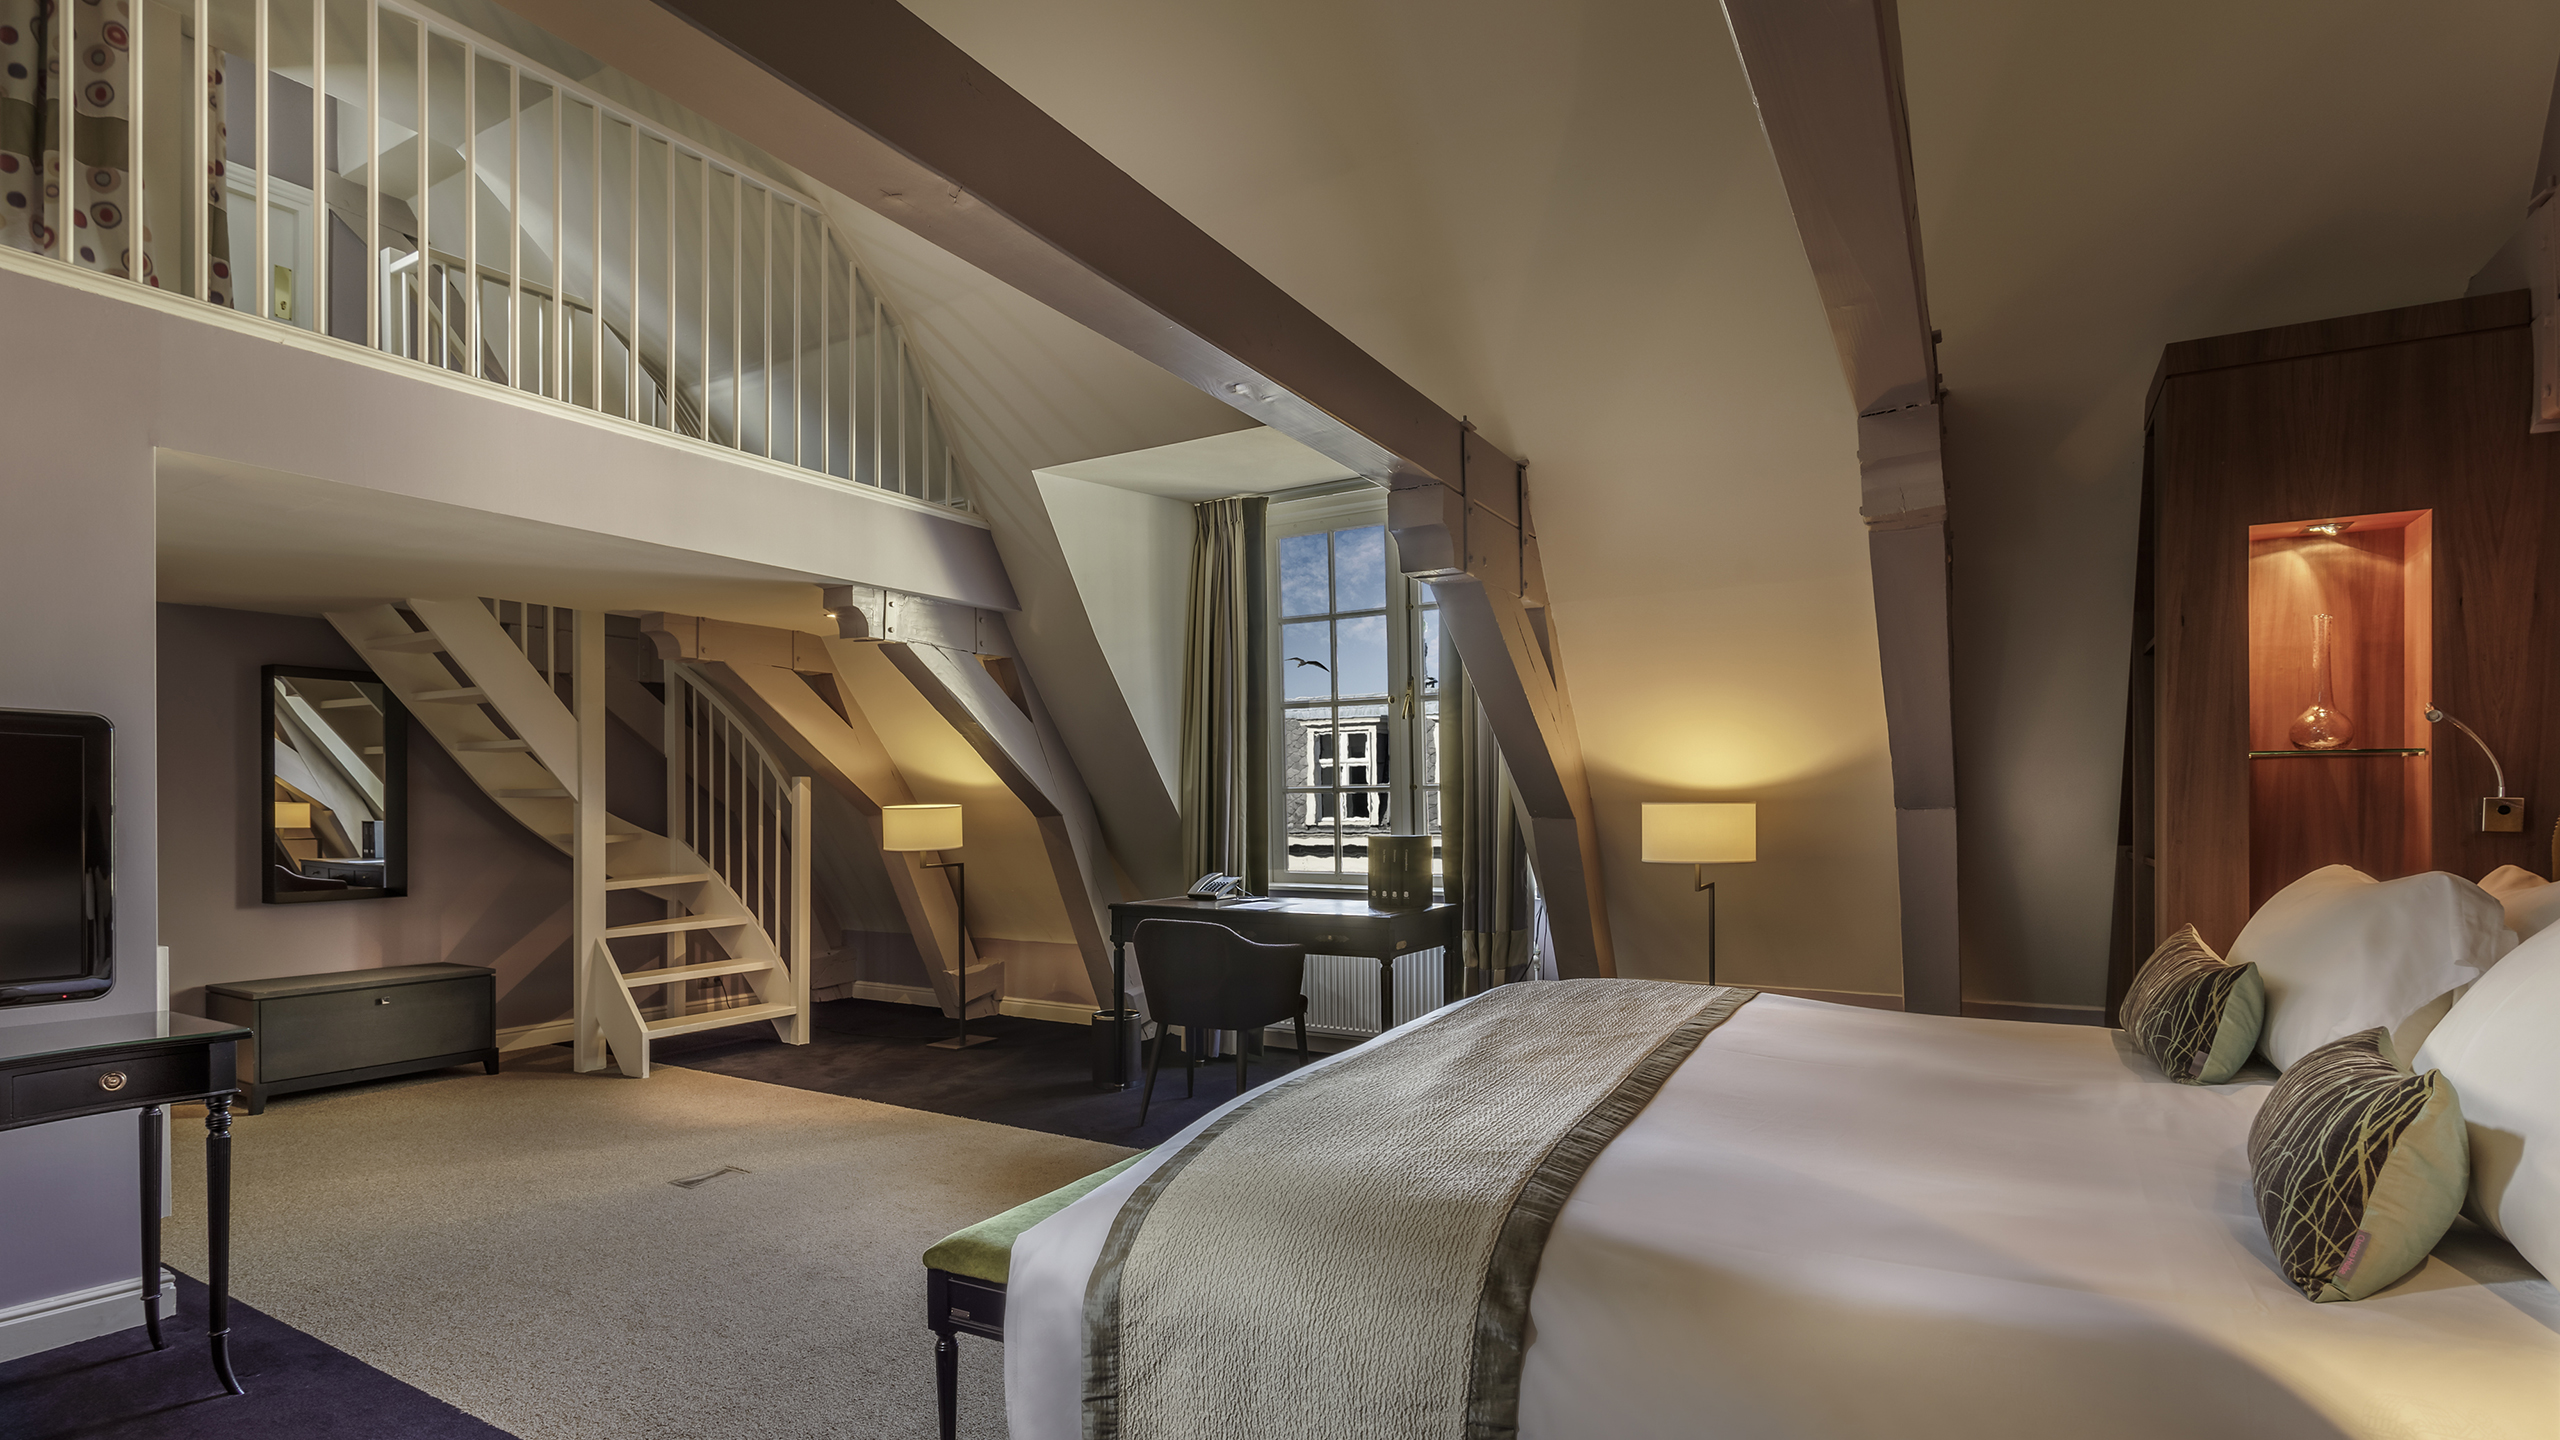 Hotel de luxo amsterdam canal house suites at sofitel legend the grand amsterdam for Living room restaurants amsterdam